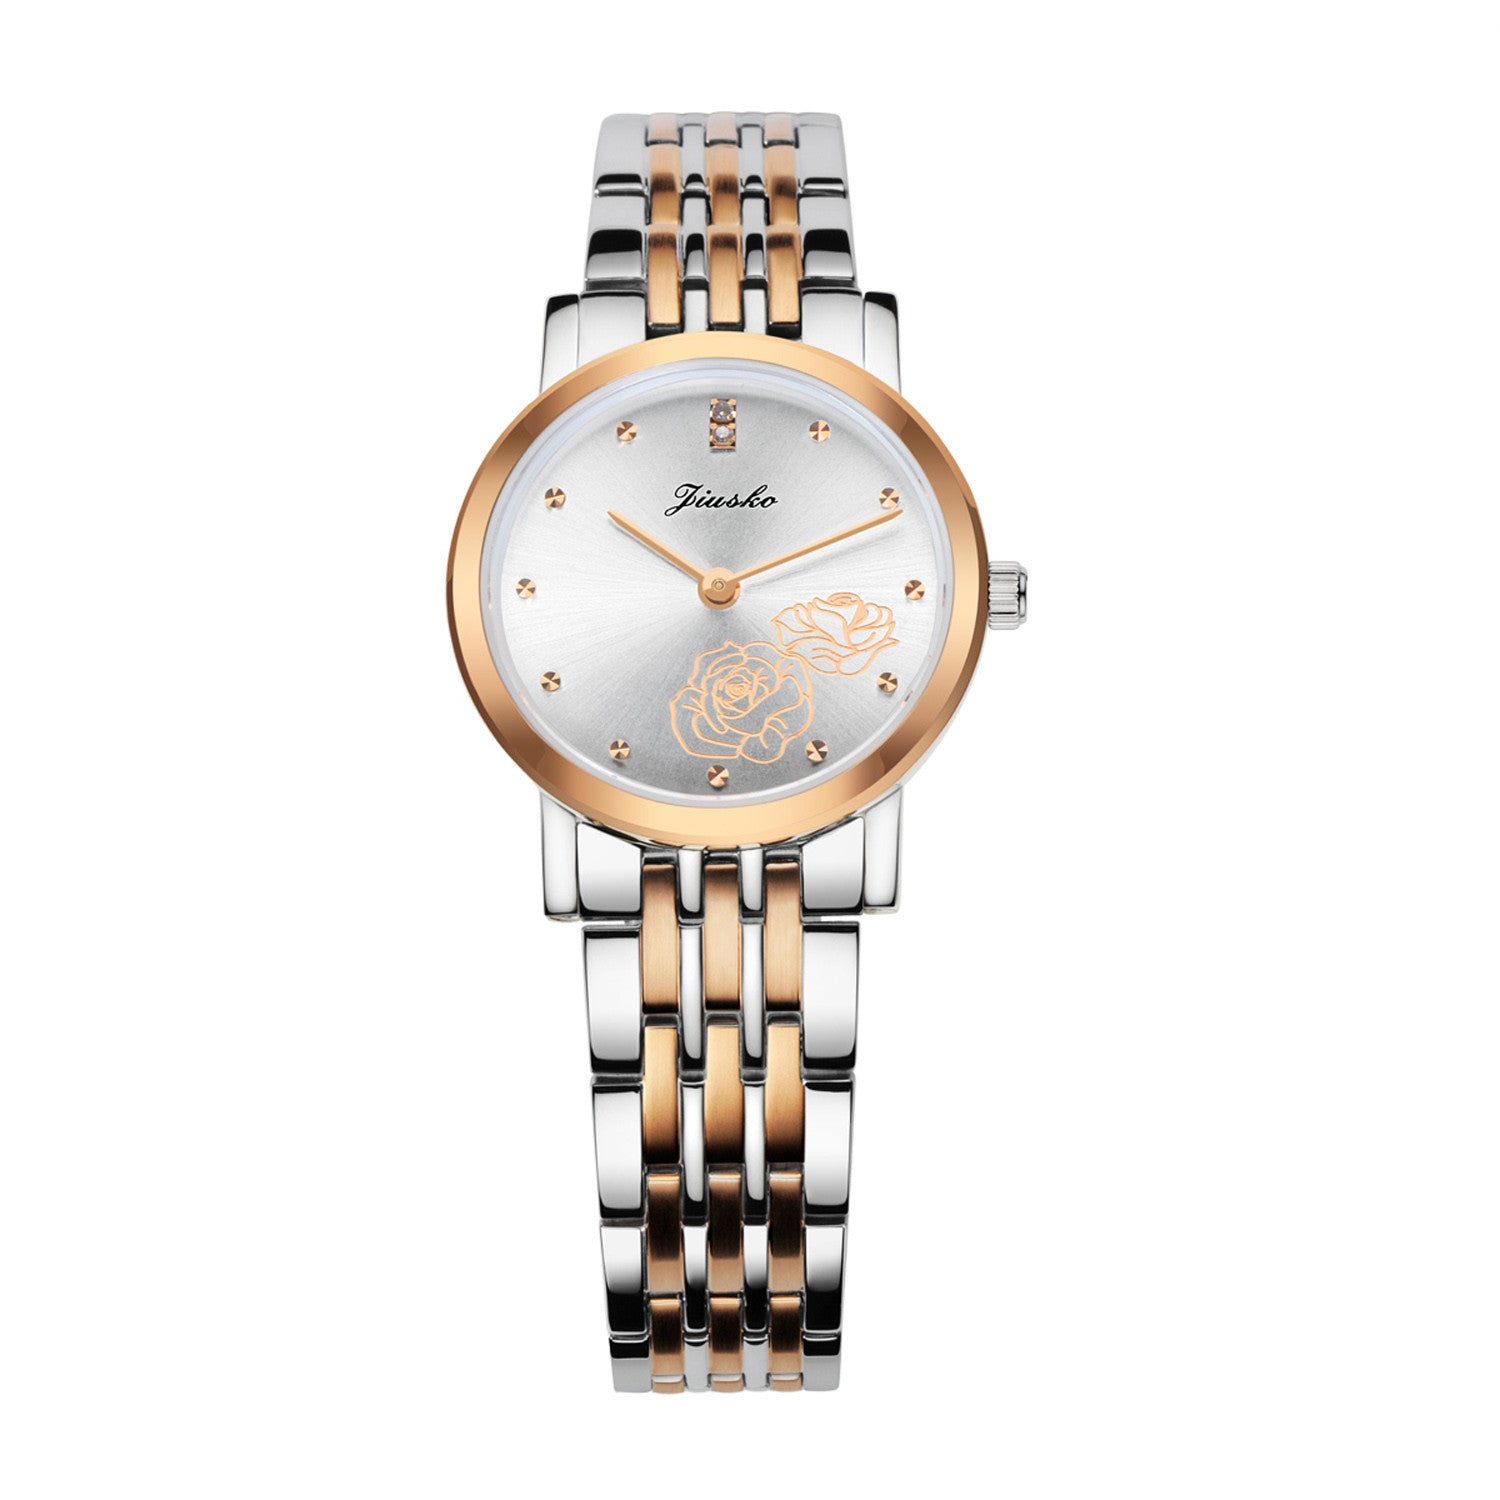 Jiusko Watch,Men's-Women-Dress-Fashion-Quartz-Two Tone Stainless Steel-50m-520MS-SRG01